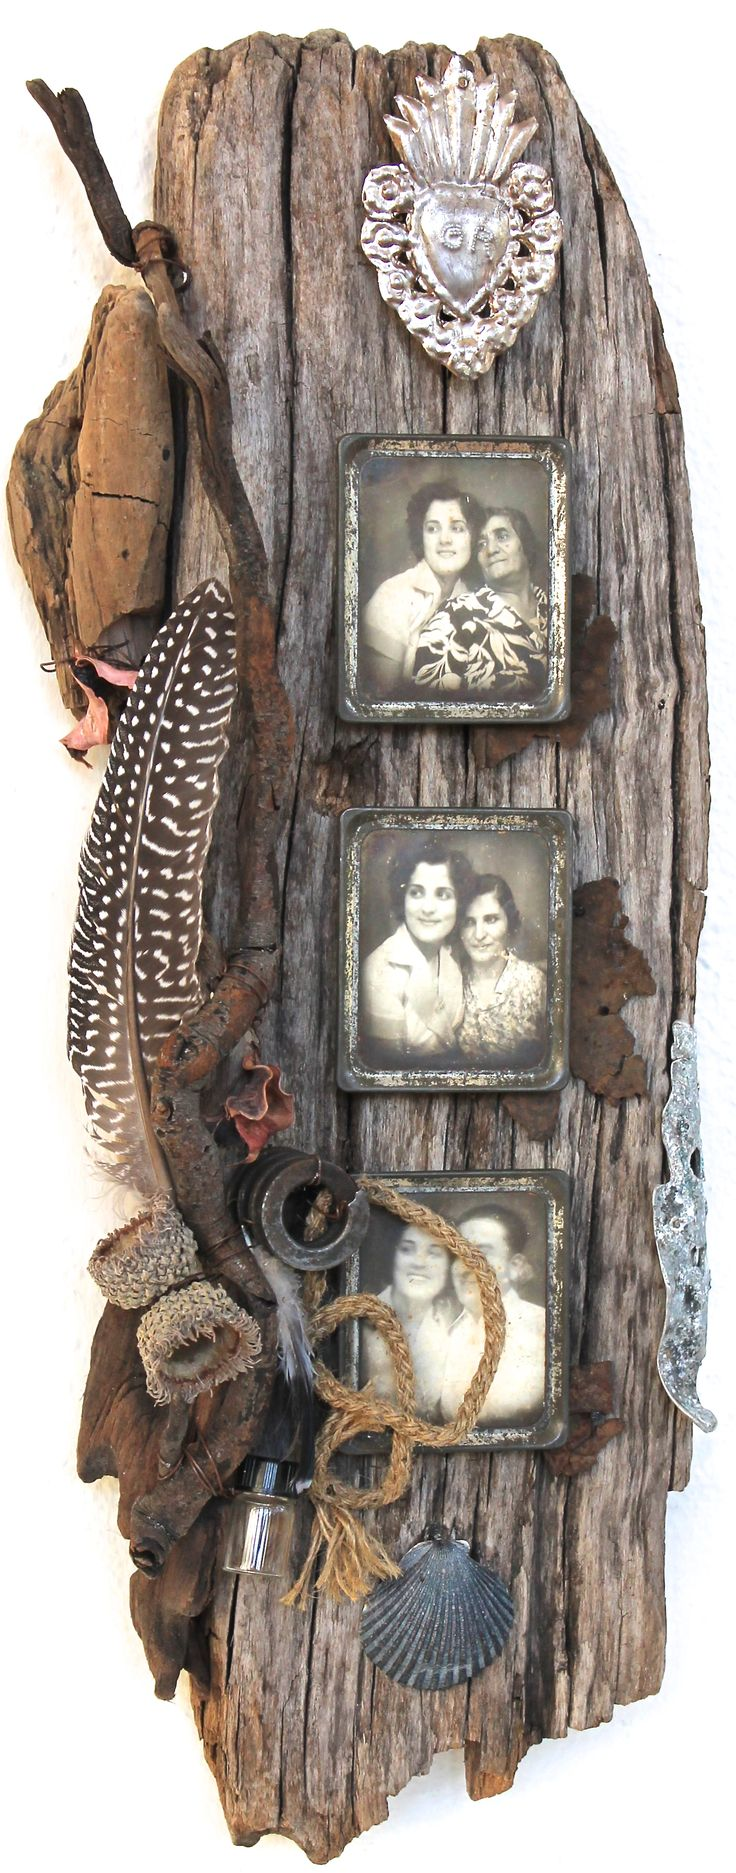 assemblage art by mike bennion - 'tout va bien'